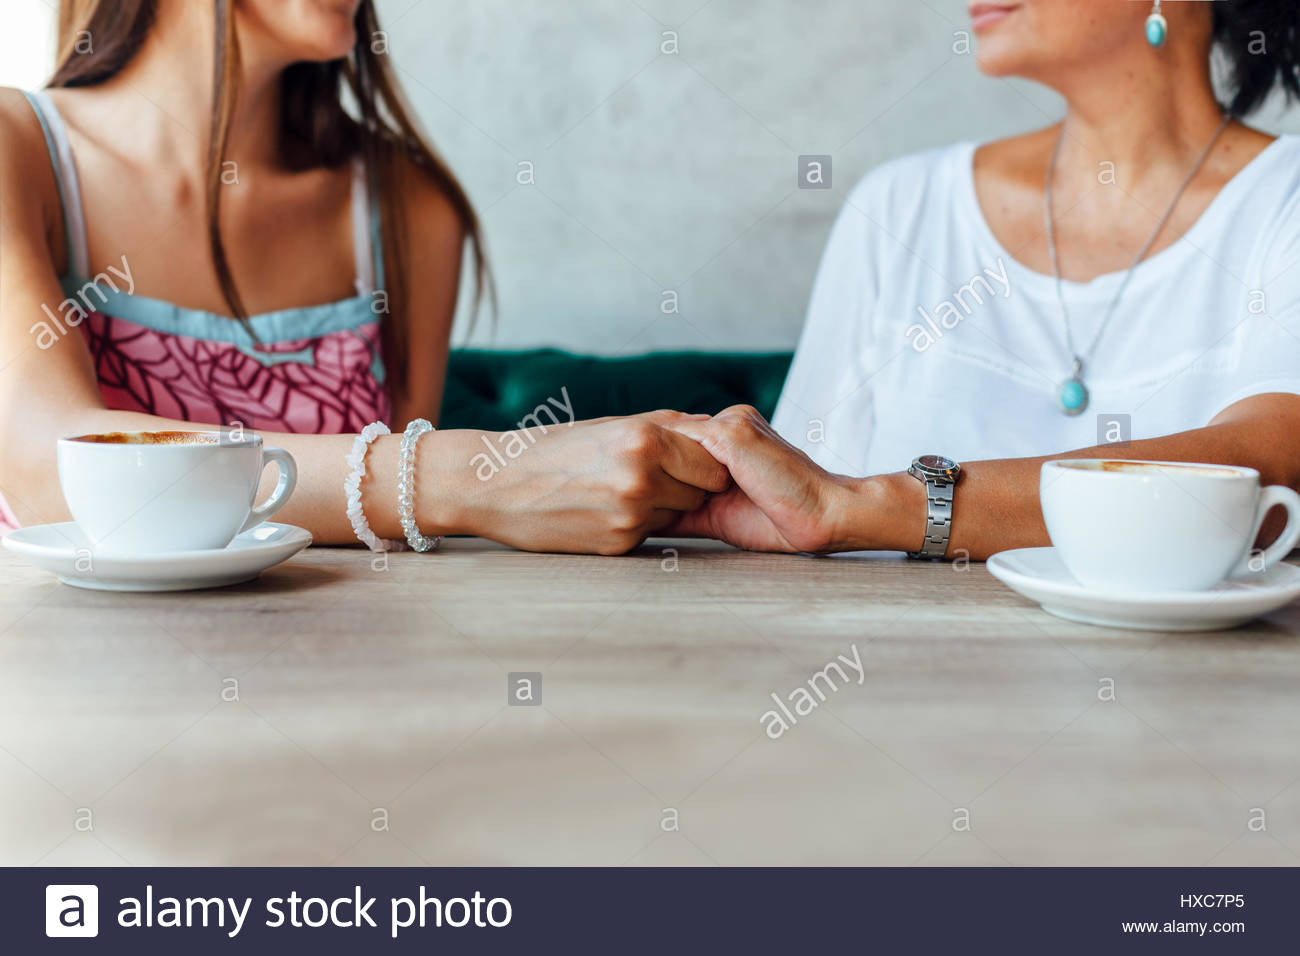 Tenderness mother and daughter after a cup of coffee in a cafe - Stock Image